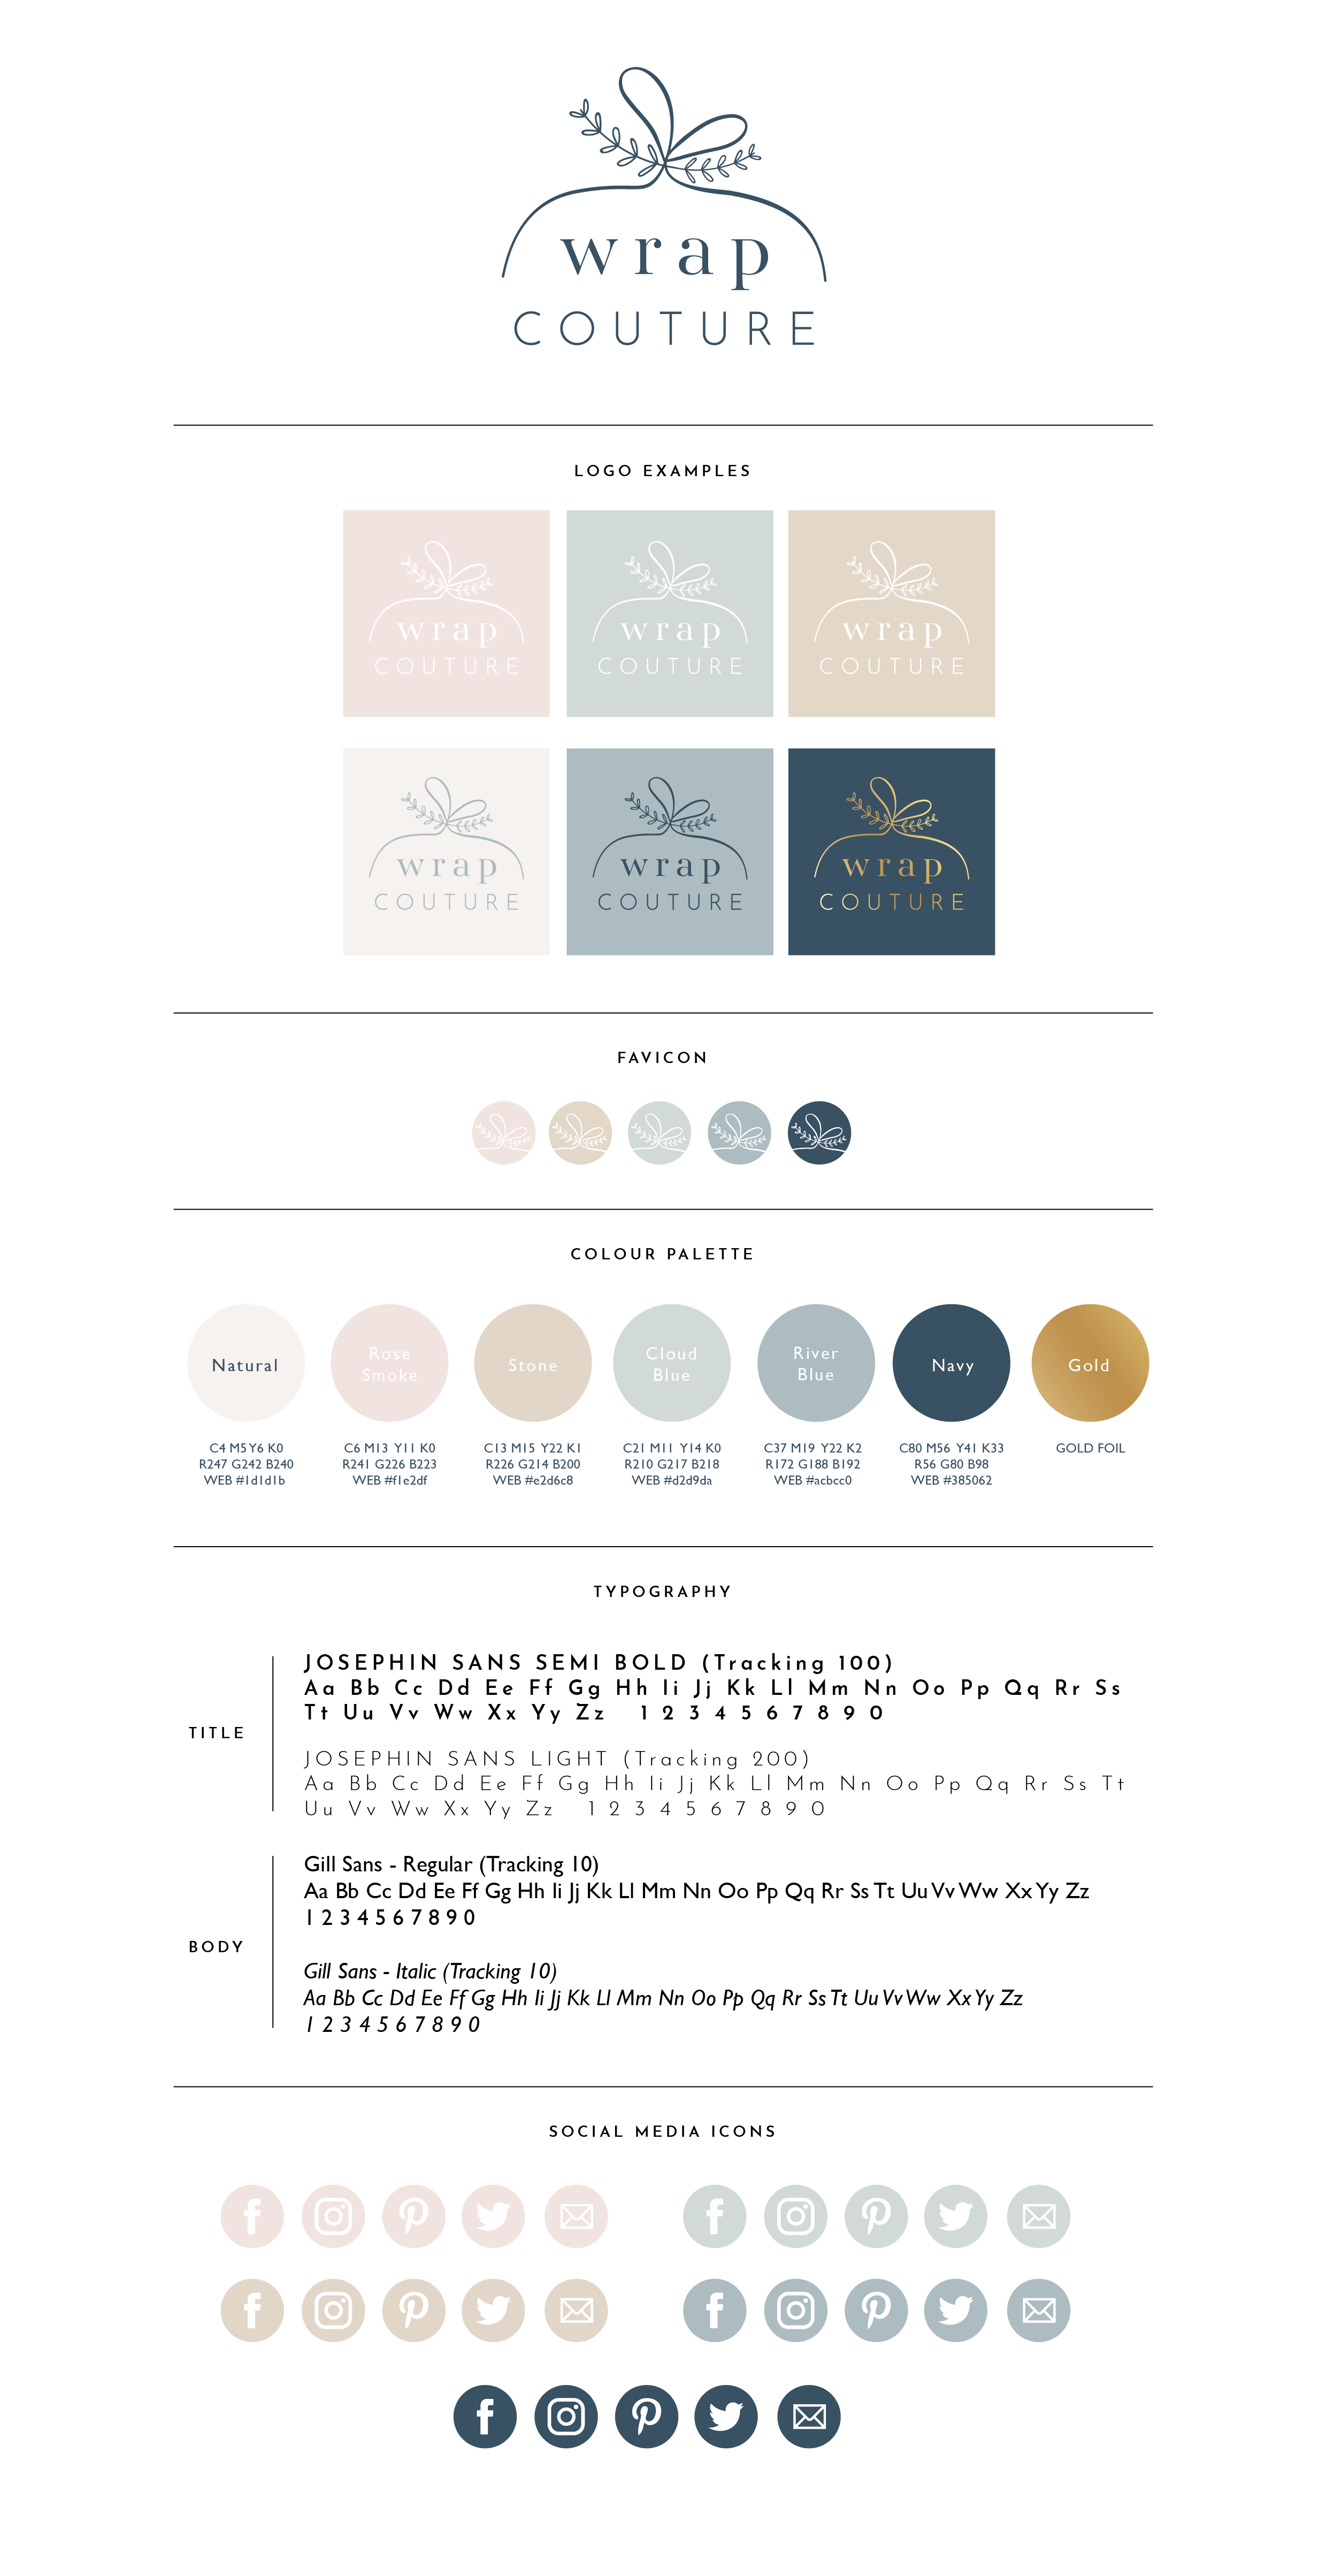 Brand Style Guide - Client Copy-01.png